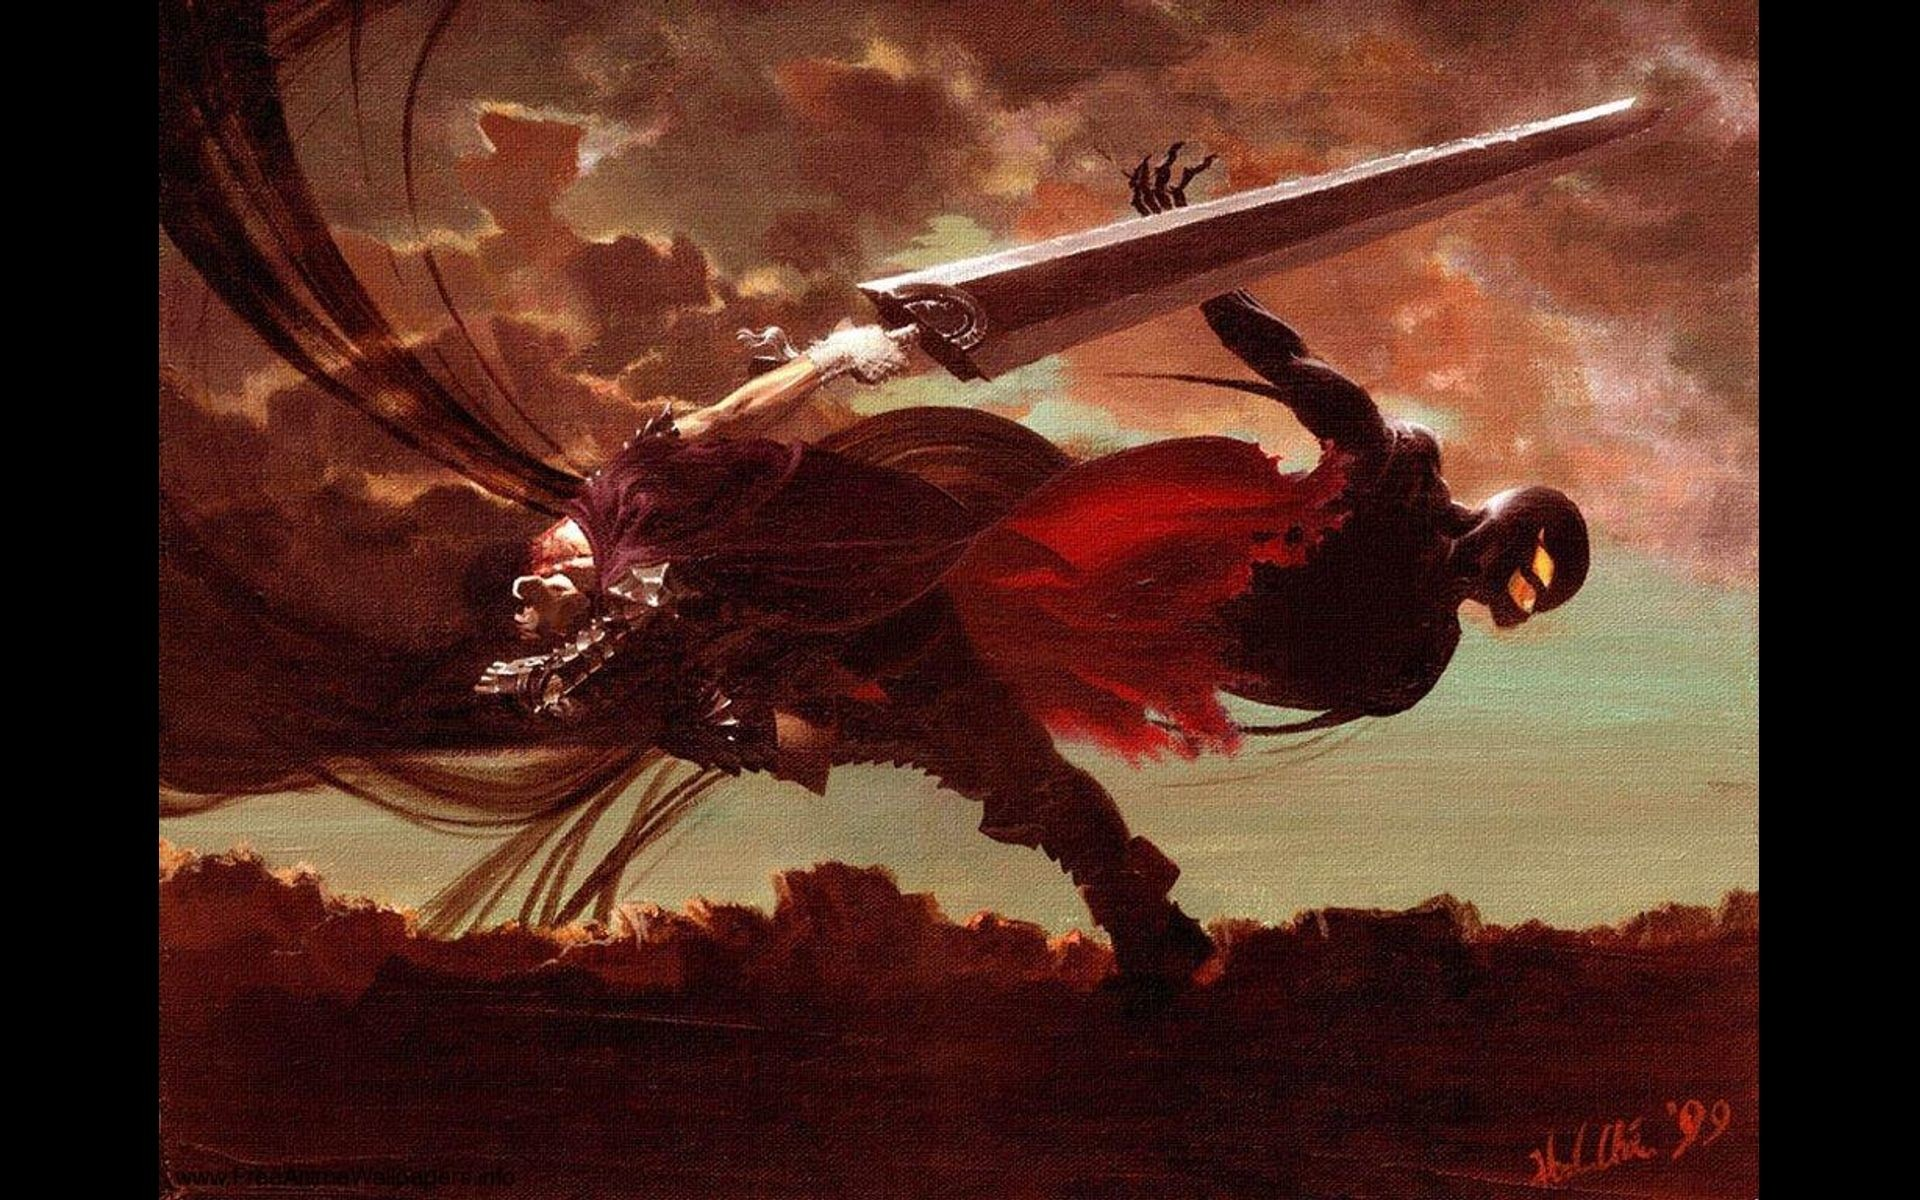 Berserk 2017 Wallpapers 77 Background Pictures